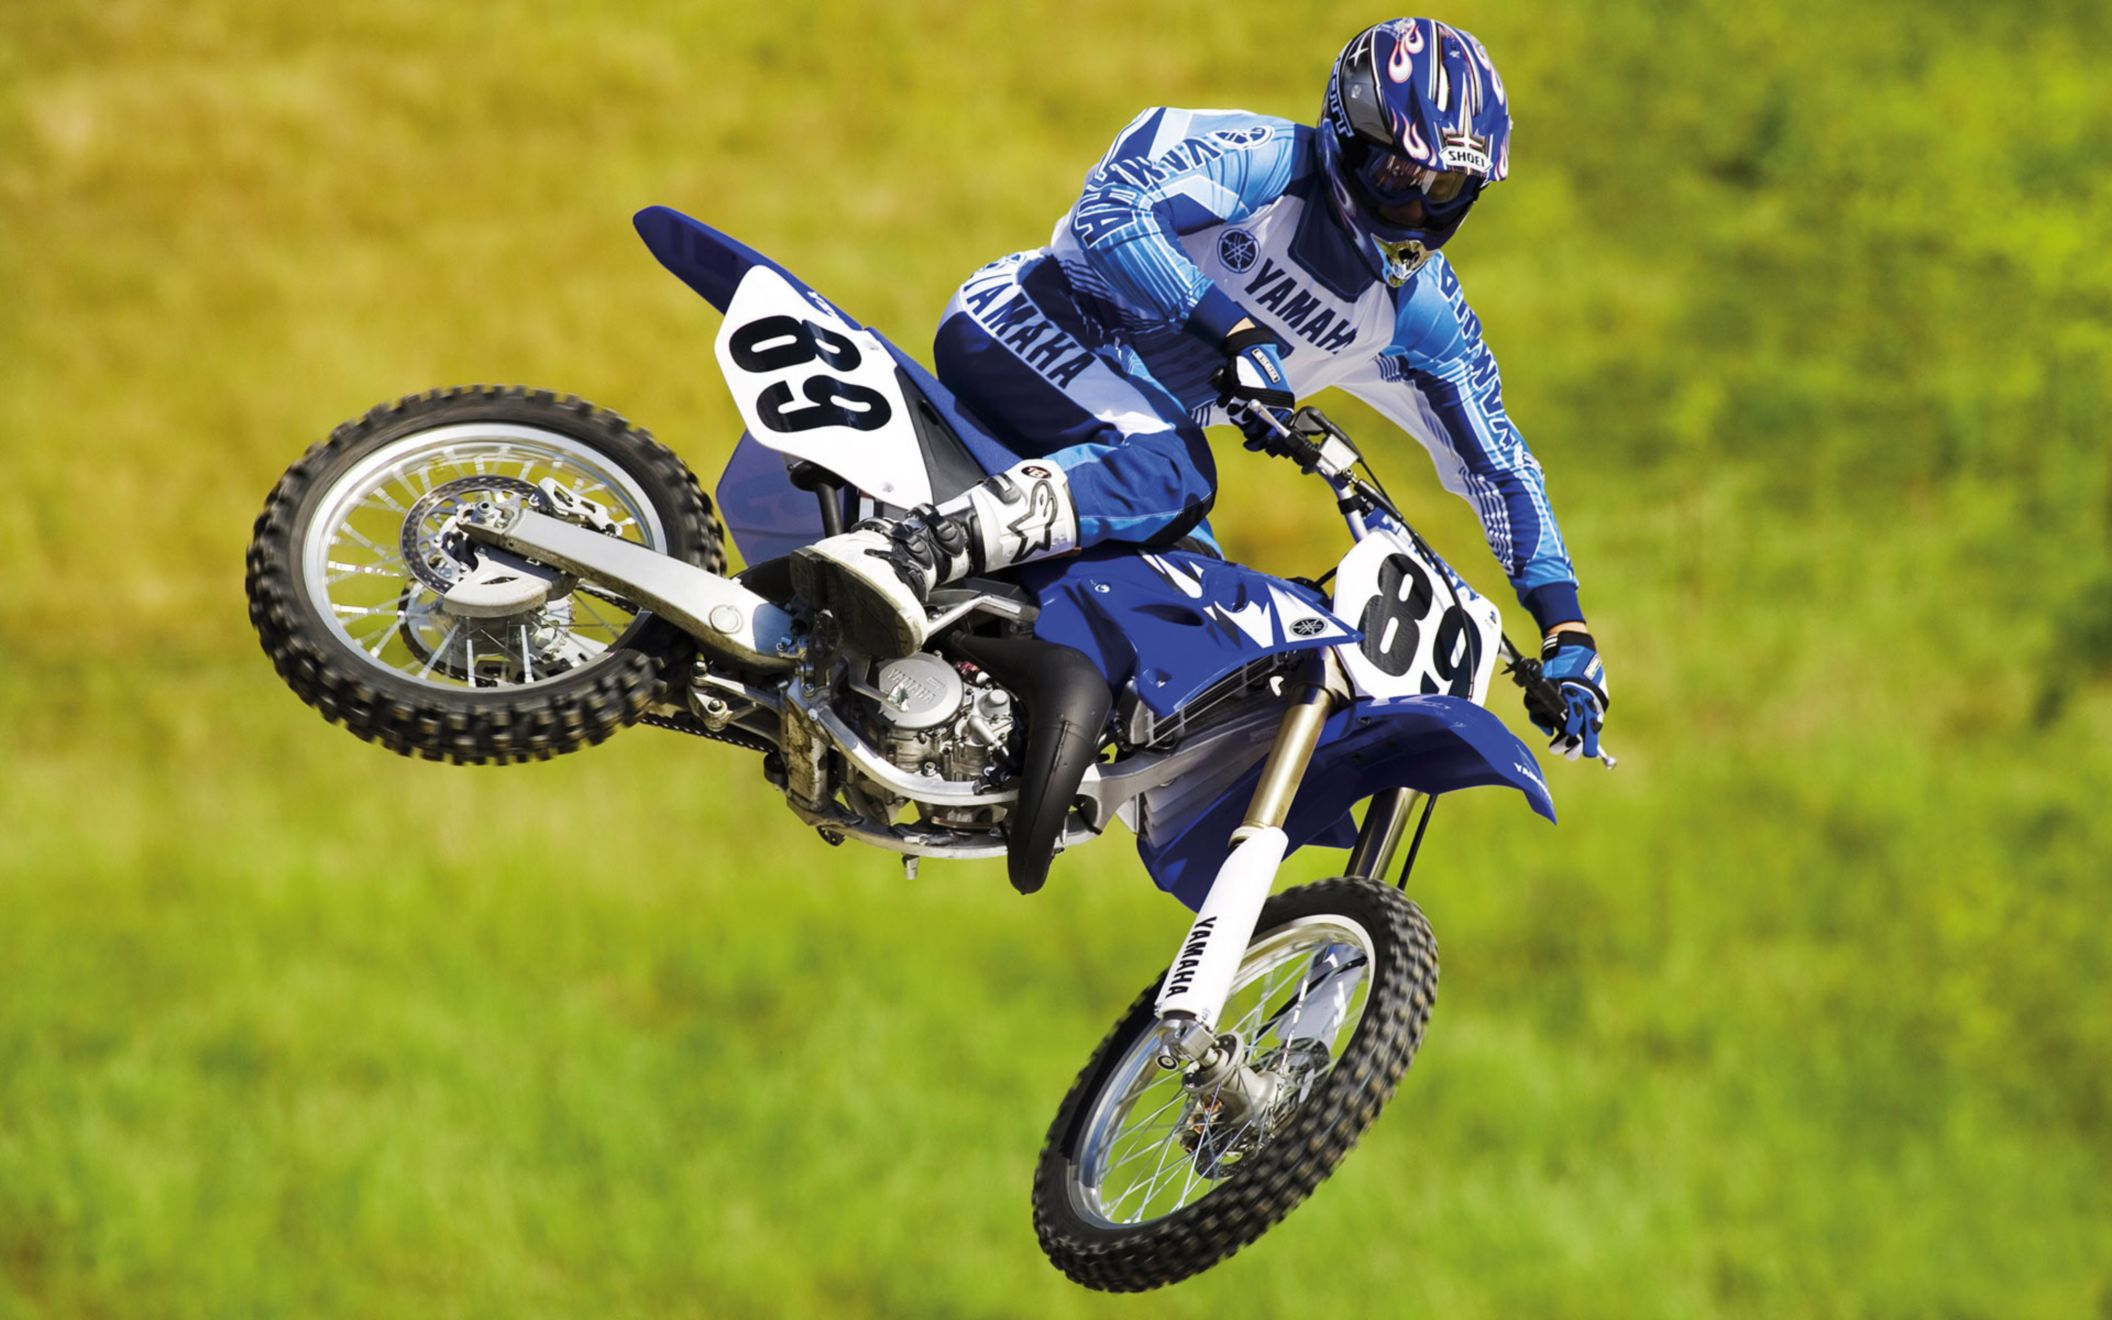 Download free HD Yamaha Motocross Bike Wide Wallpaper, image